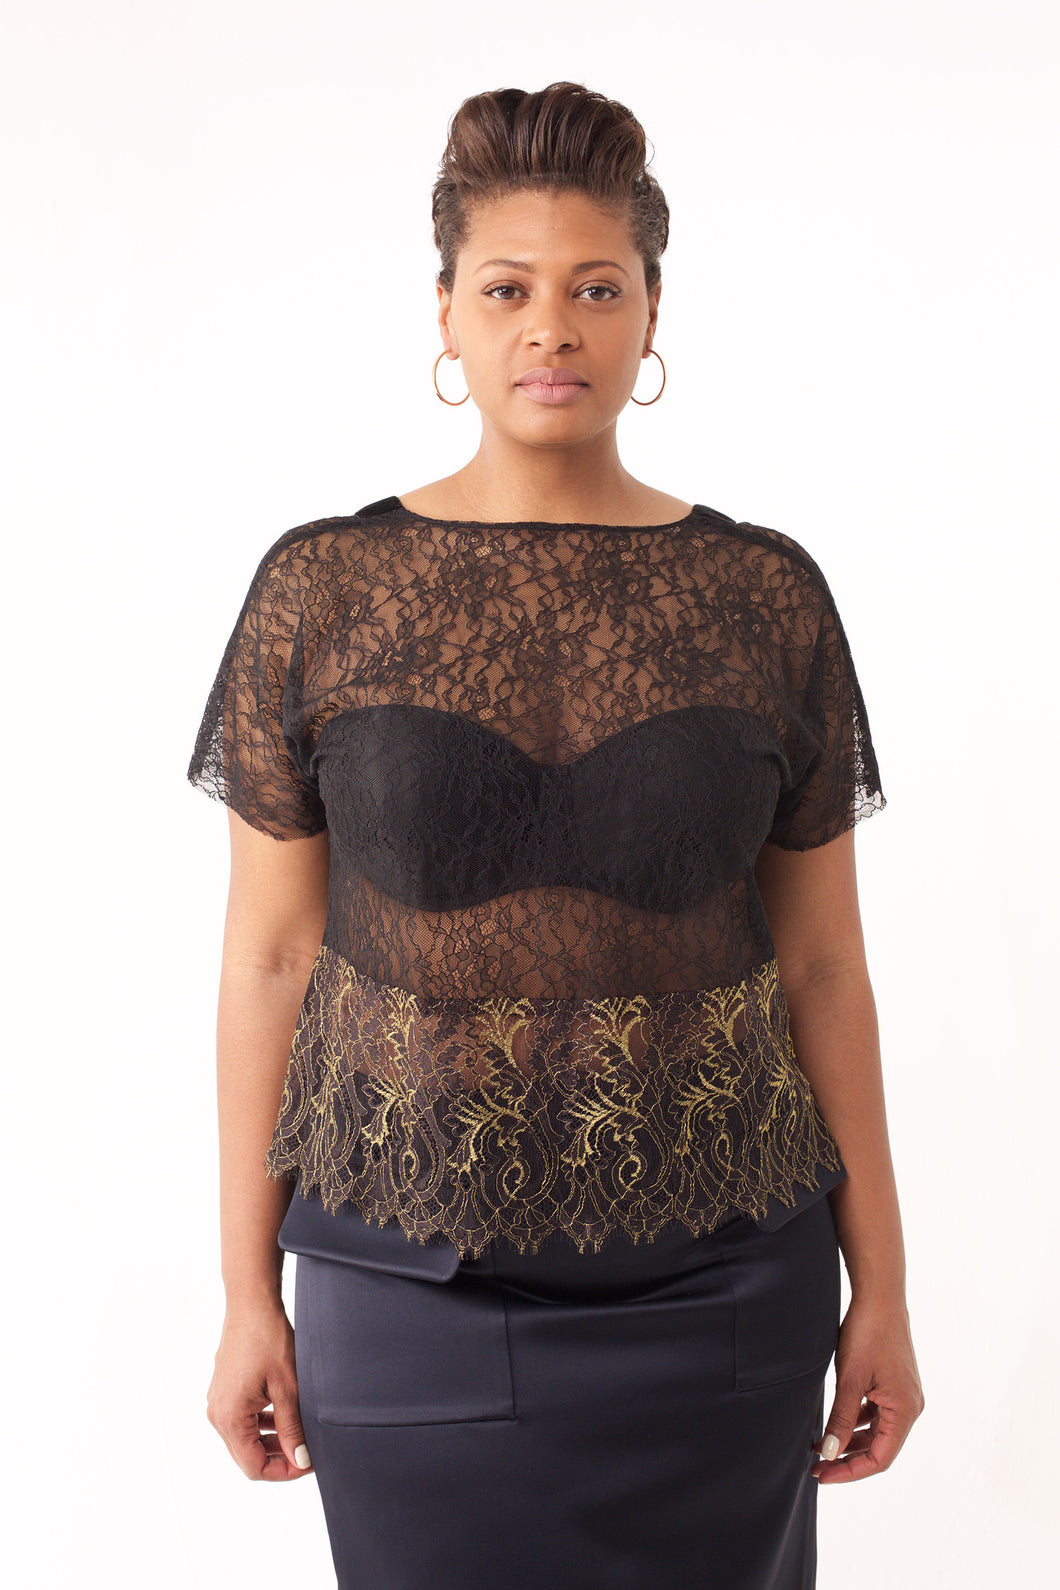 Rachel Chantilly Lace Top